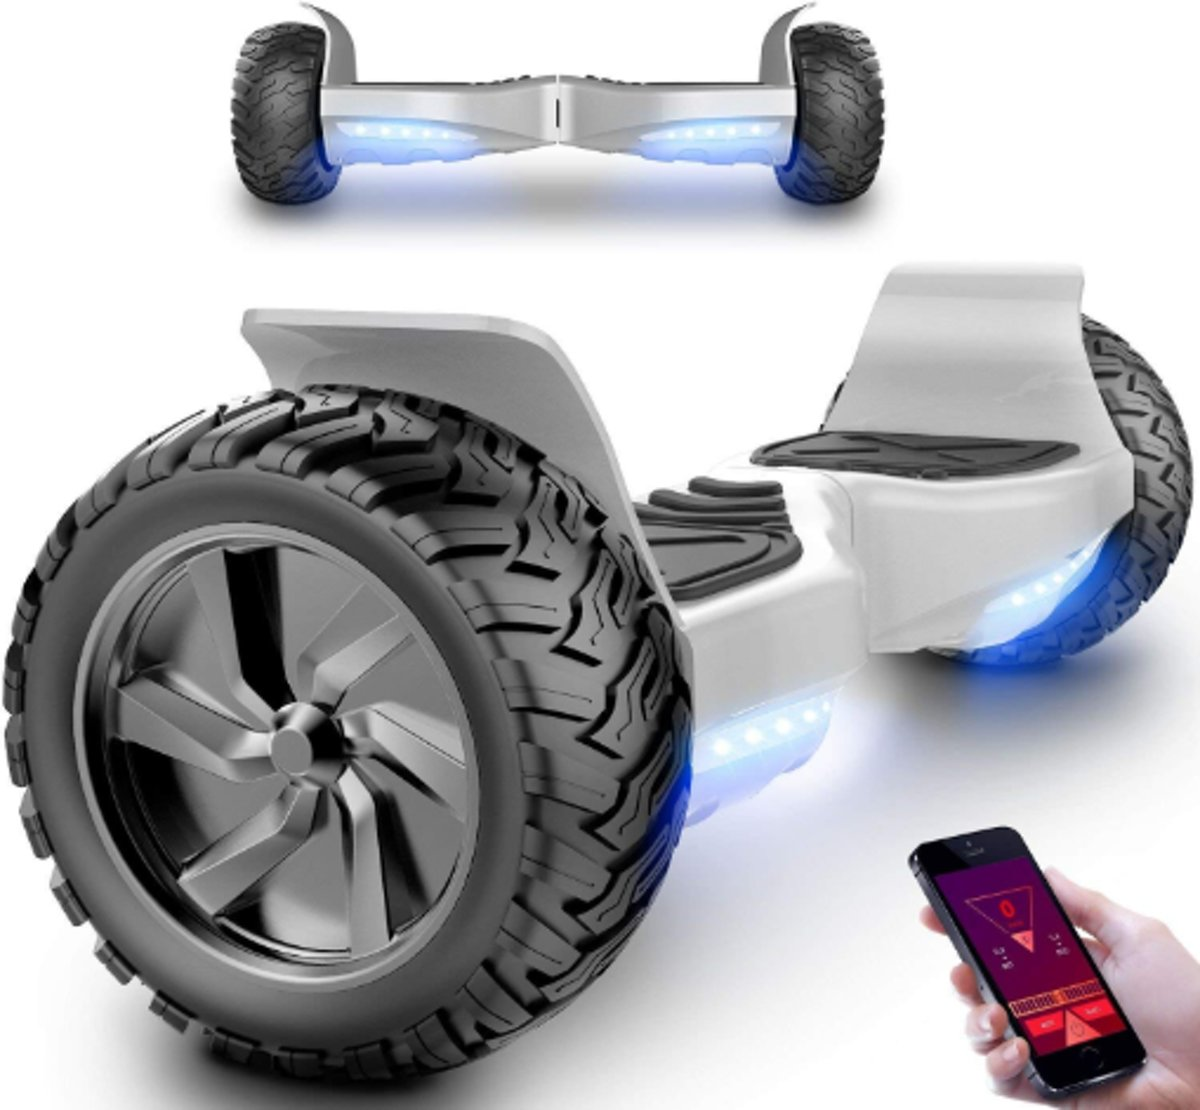 HOVERBOARD HUMMER ZILVER ALLE TERREINEN 8.5 INCHES Off Road App Functie met V5 Bluetooth speaker&TAOTAO 2018 SOFTWARE